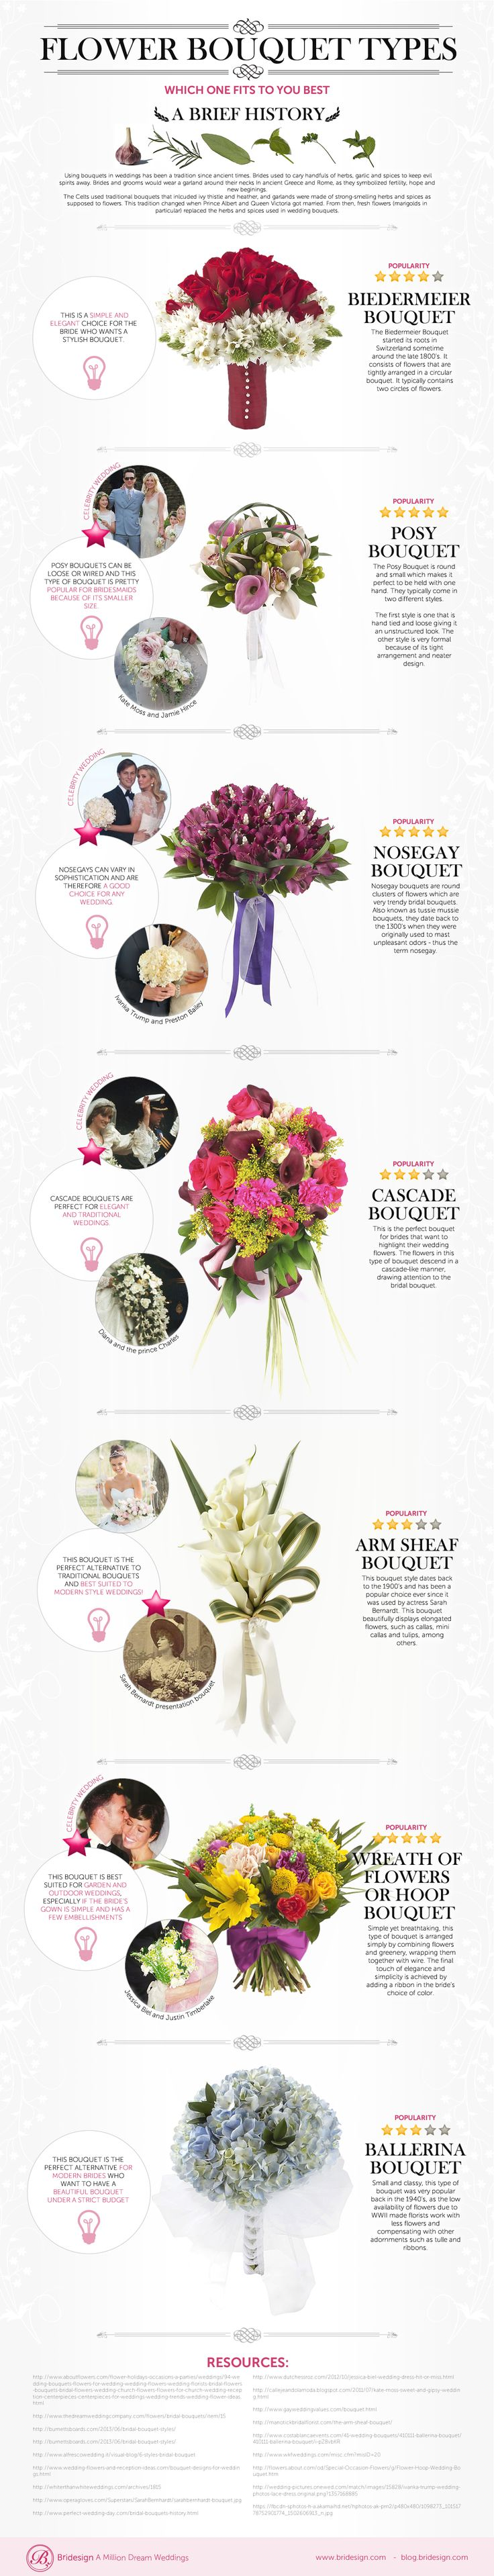 types of flower bouquets for weddings flowers pinterest. Black Bedroom Furniture Sets. Home Design Ideas